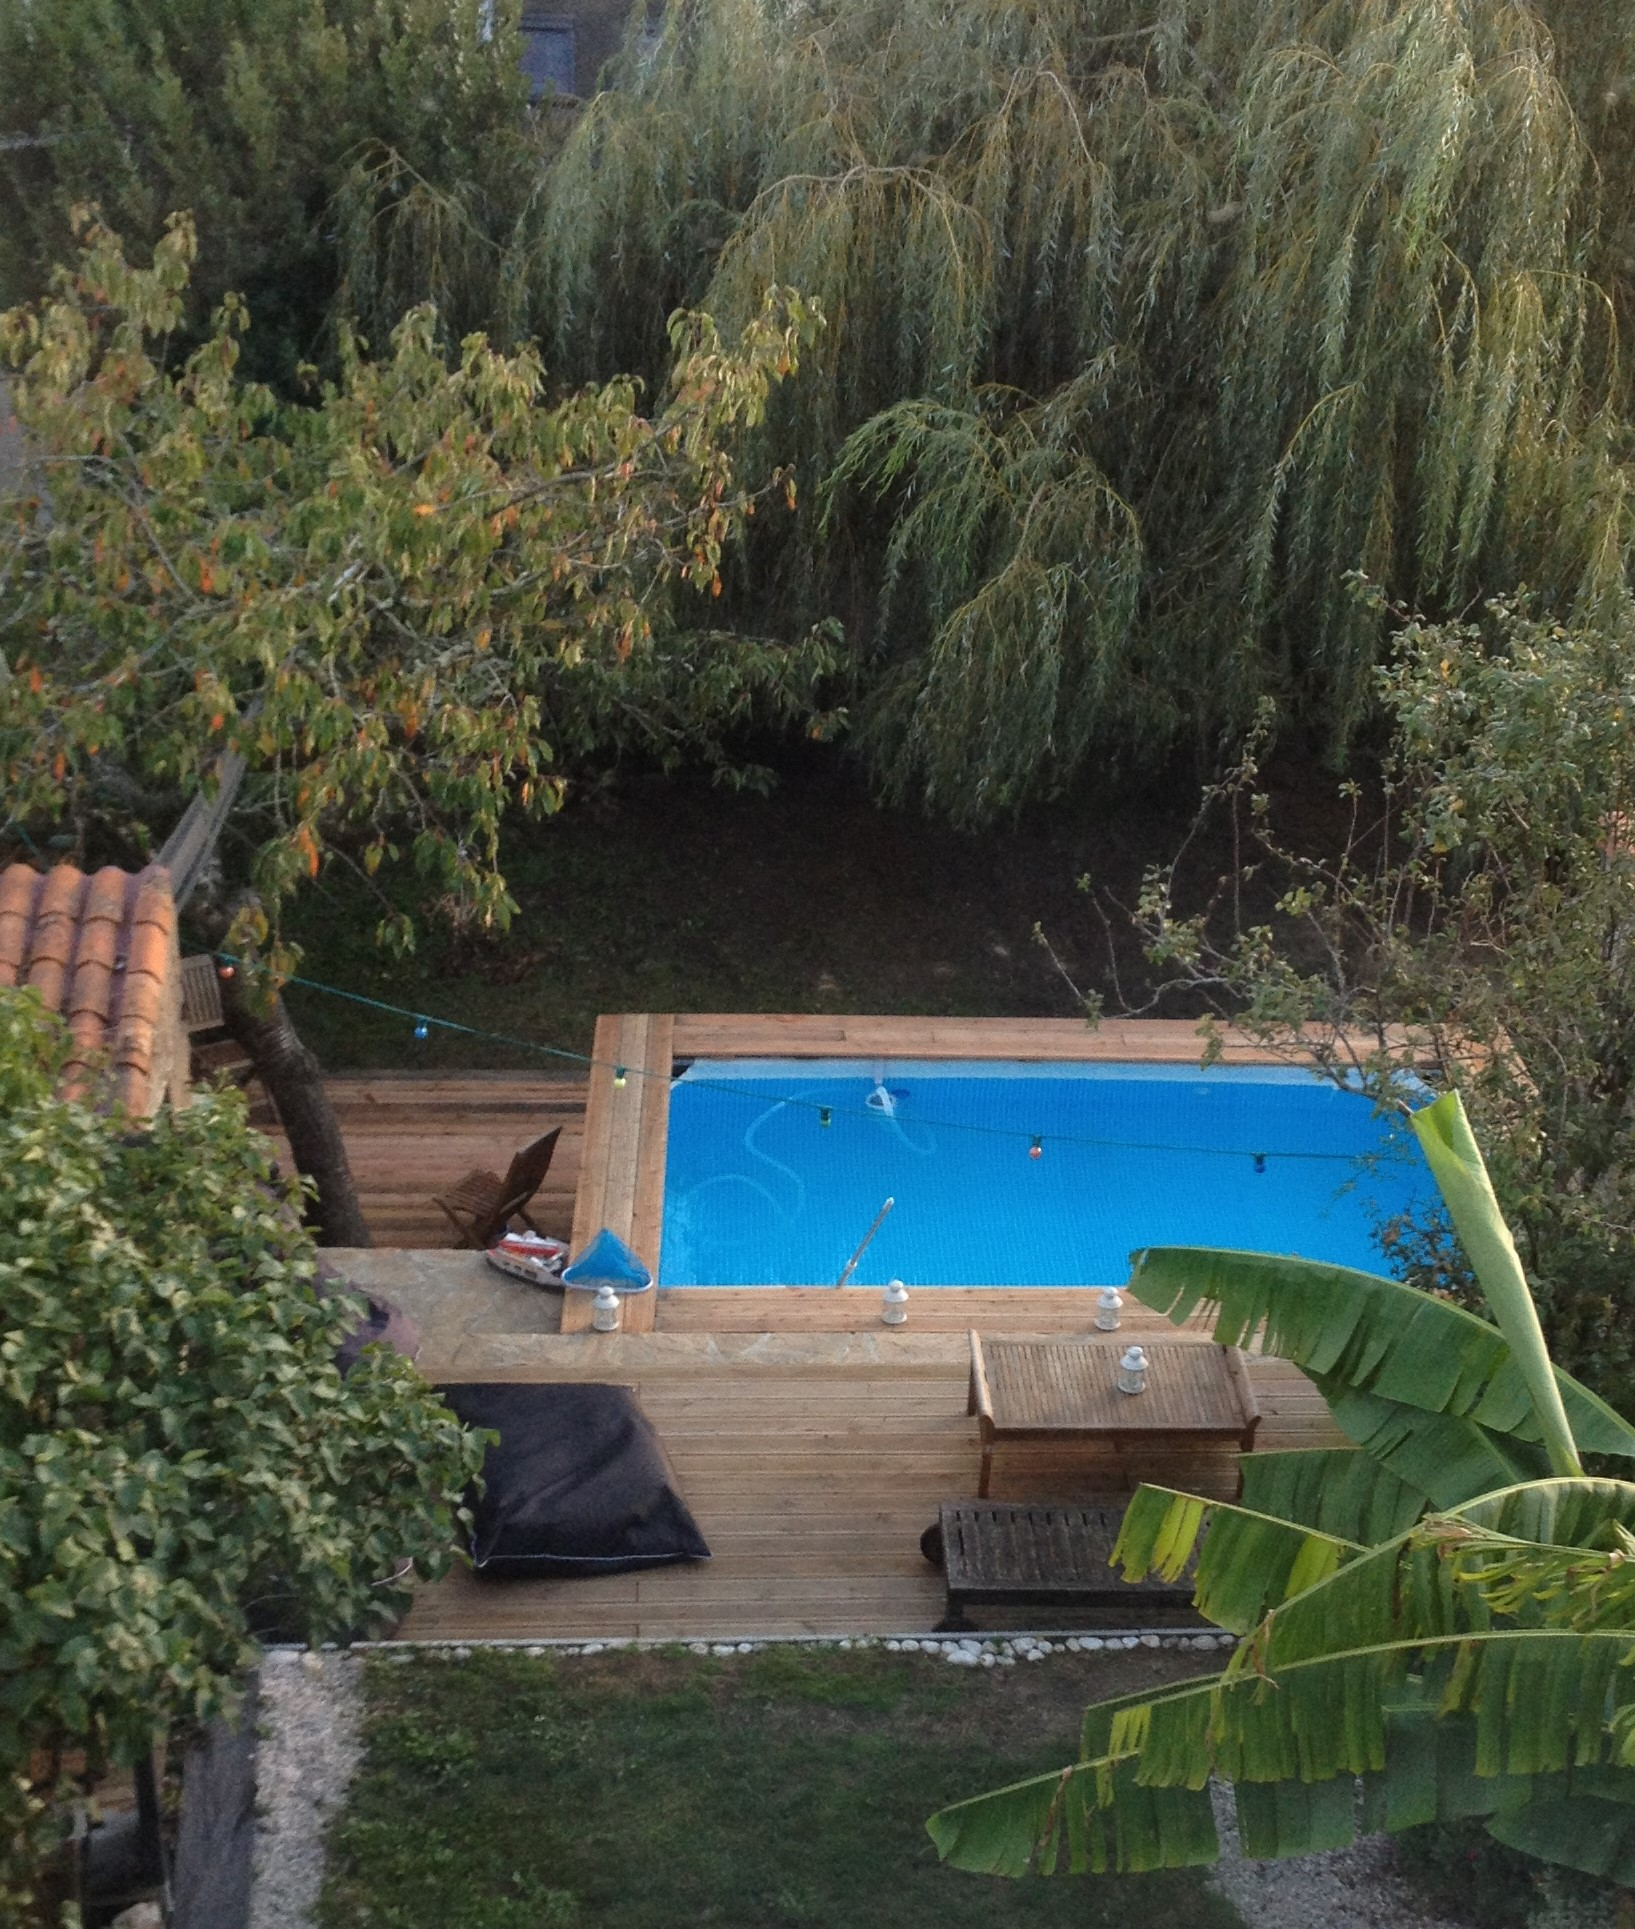 Comment encastrer sa piscine hors sol blog de raviday for Piscine hors sol jardin de catherine